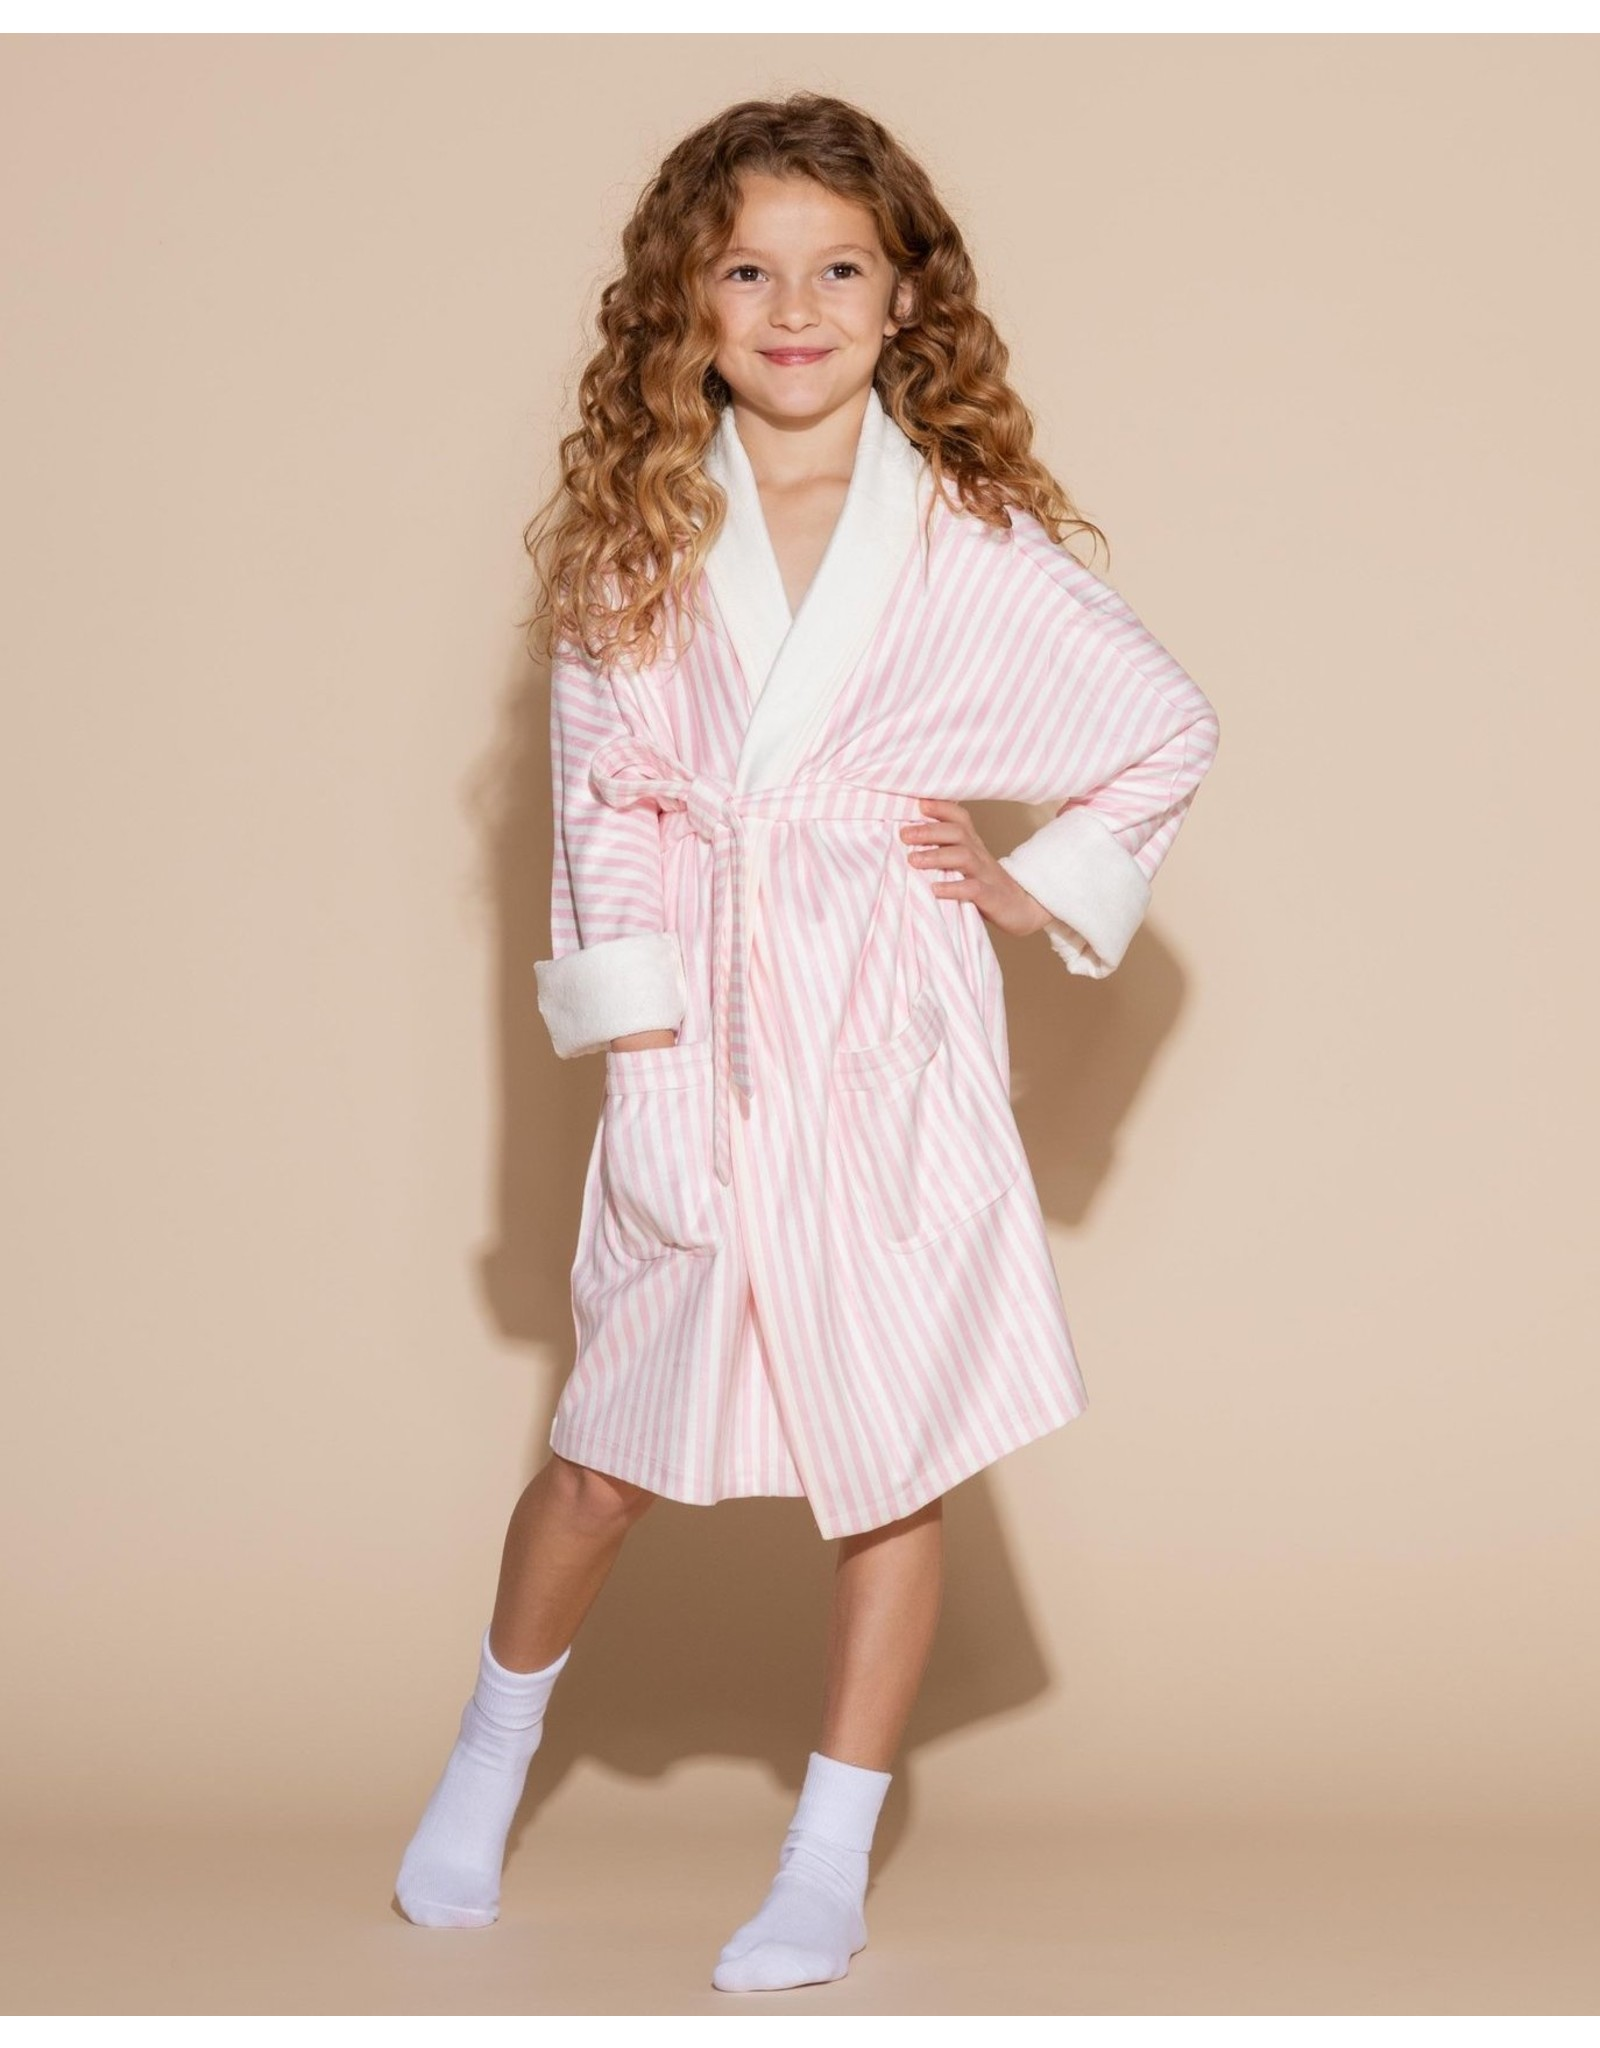 - 50% Bathrobe for kids - Princess